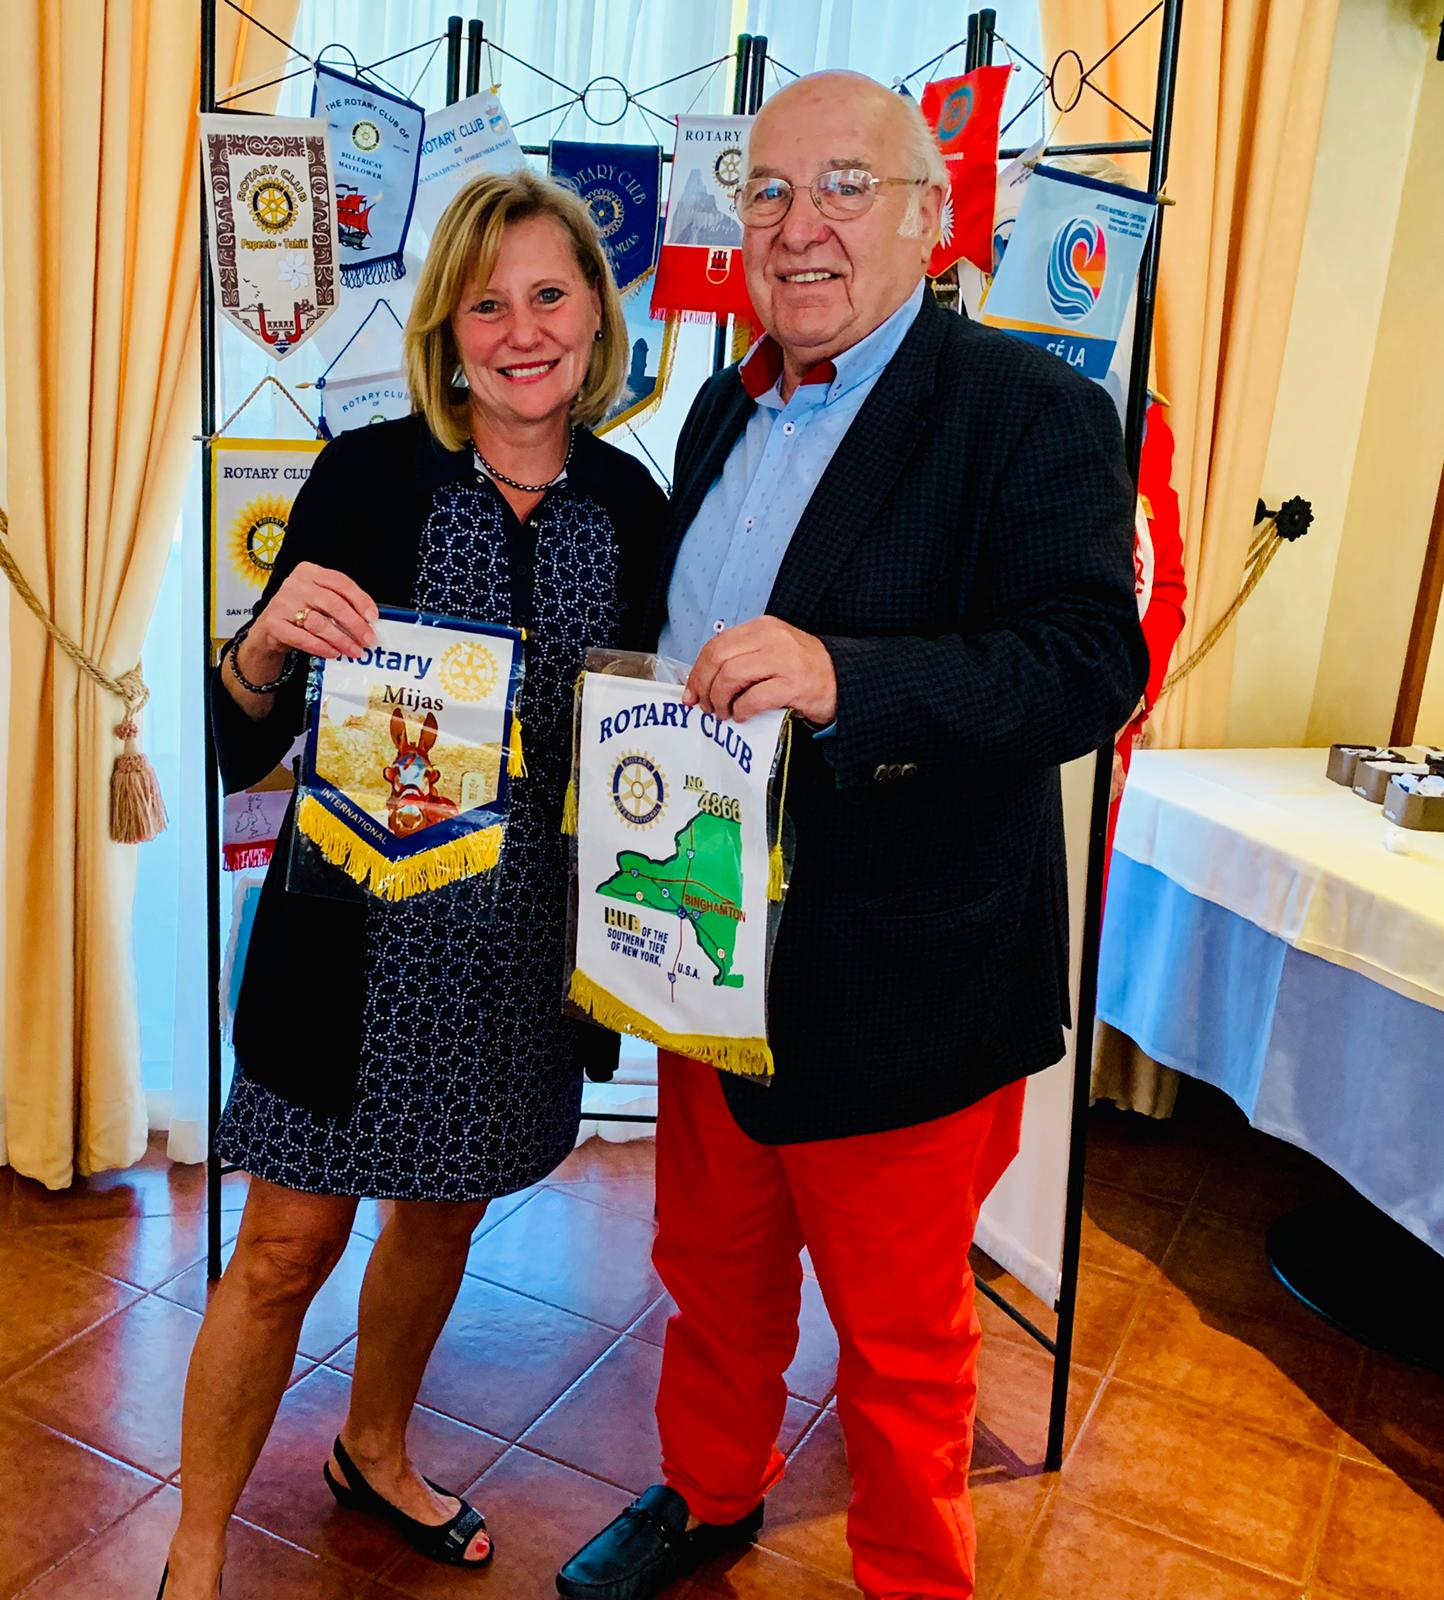 Member-Mary-Surdey-visits-Spain-Rotary-Meeting-(1)